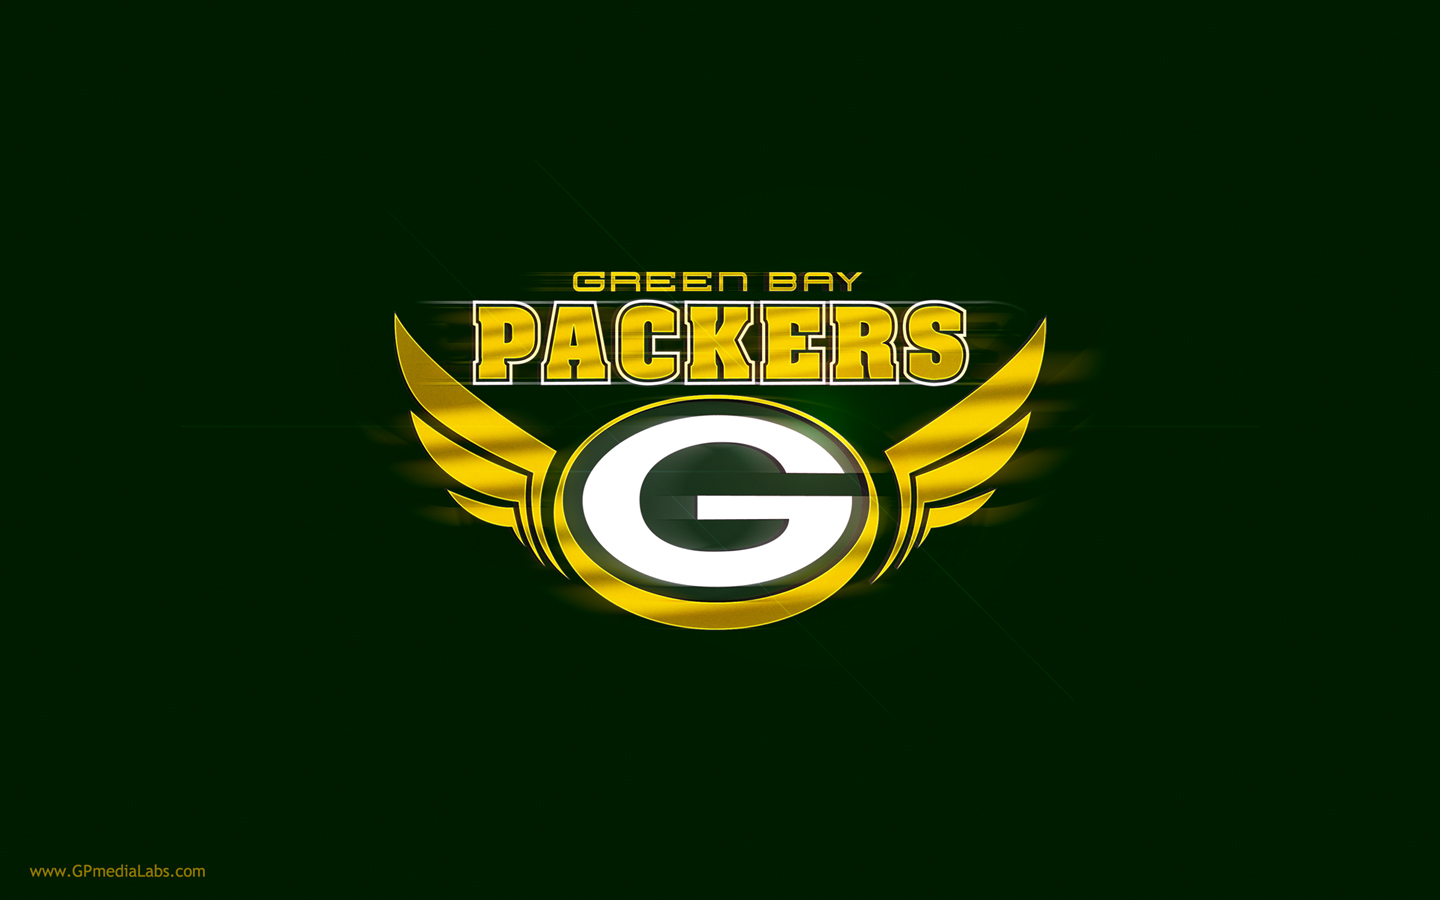 green bay packers wallpaper 2016 - photo #34